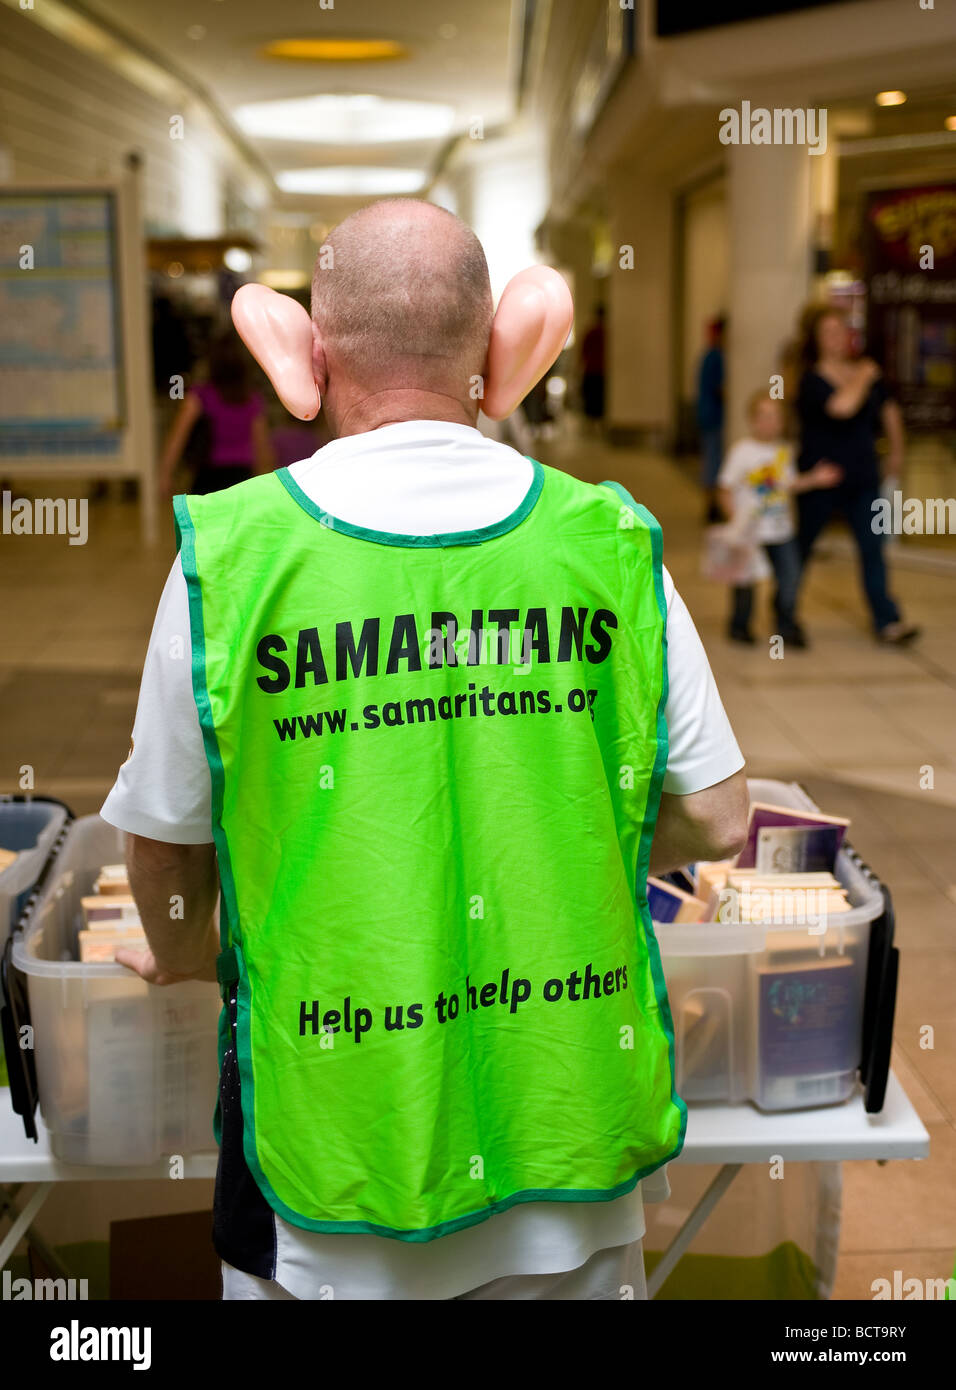 A volunteer from the charity The Samaritans fundraising whilst wearing large false plastic ears.  Photo by Gordon - Stock Image